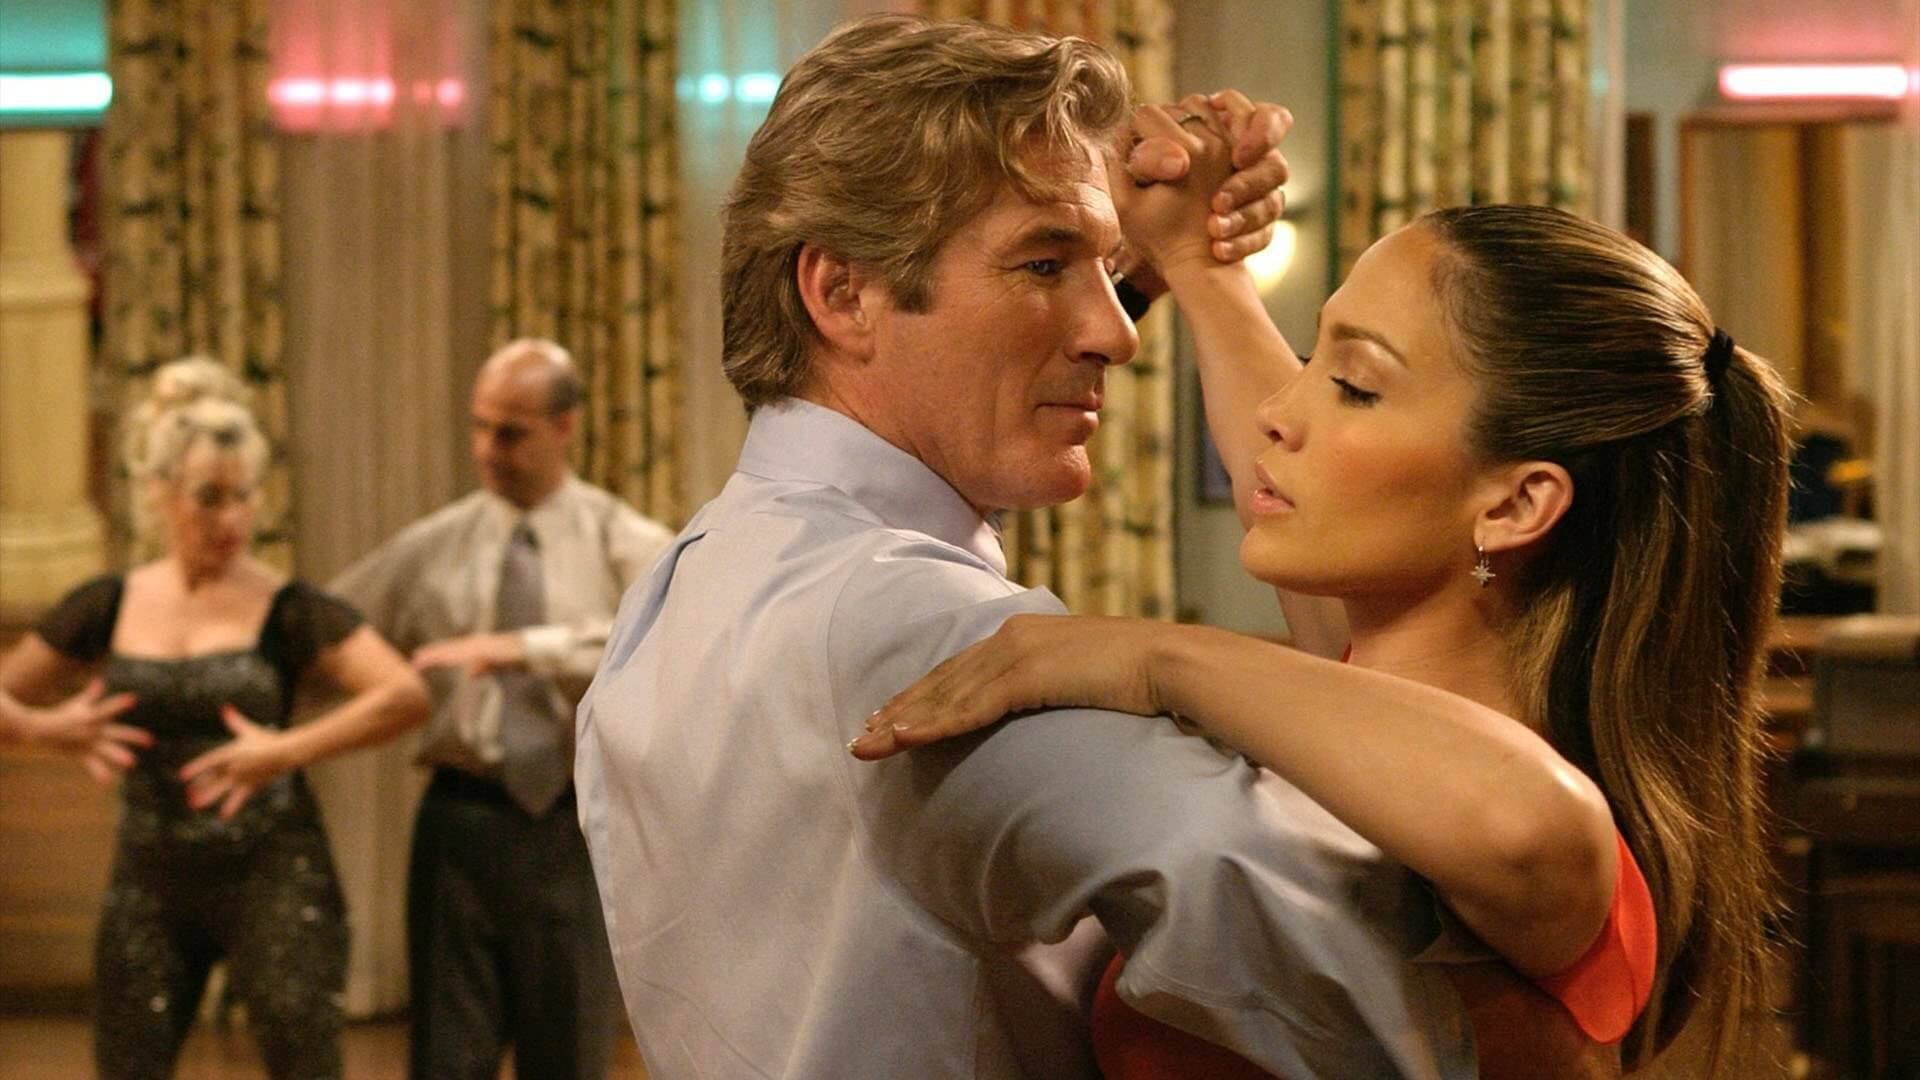 10 Romantic Movies Starring Richard Gere That'll Make You Fall Irresistibly In Love With Him